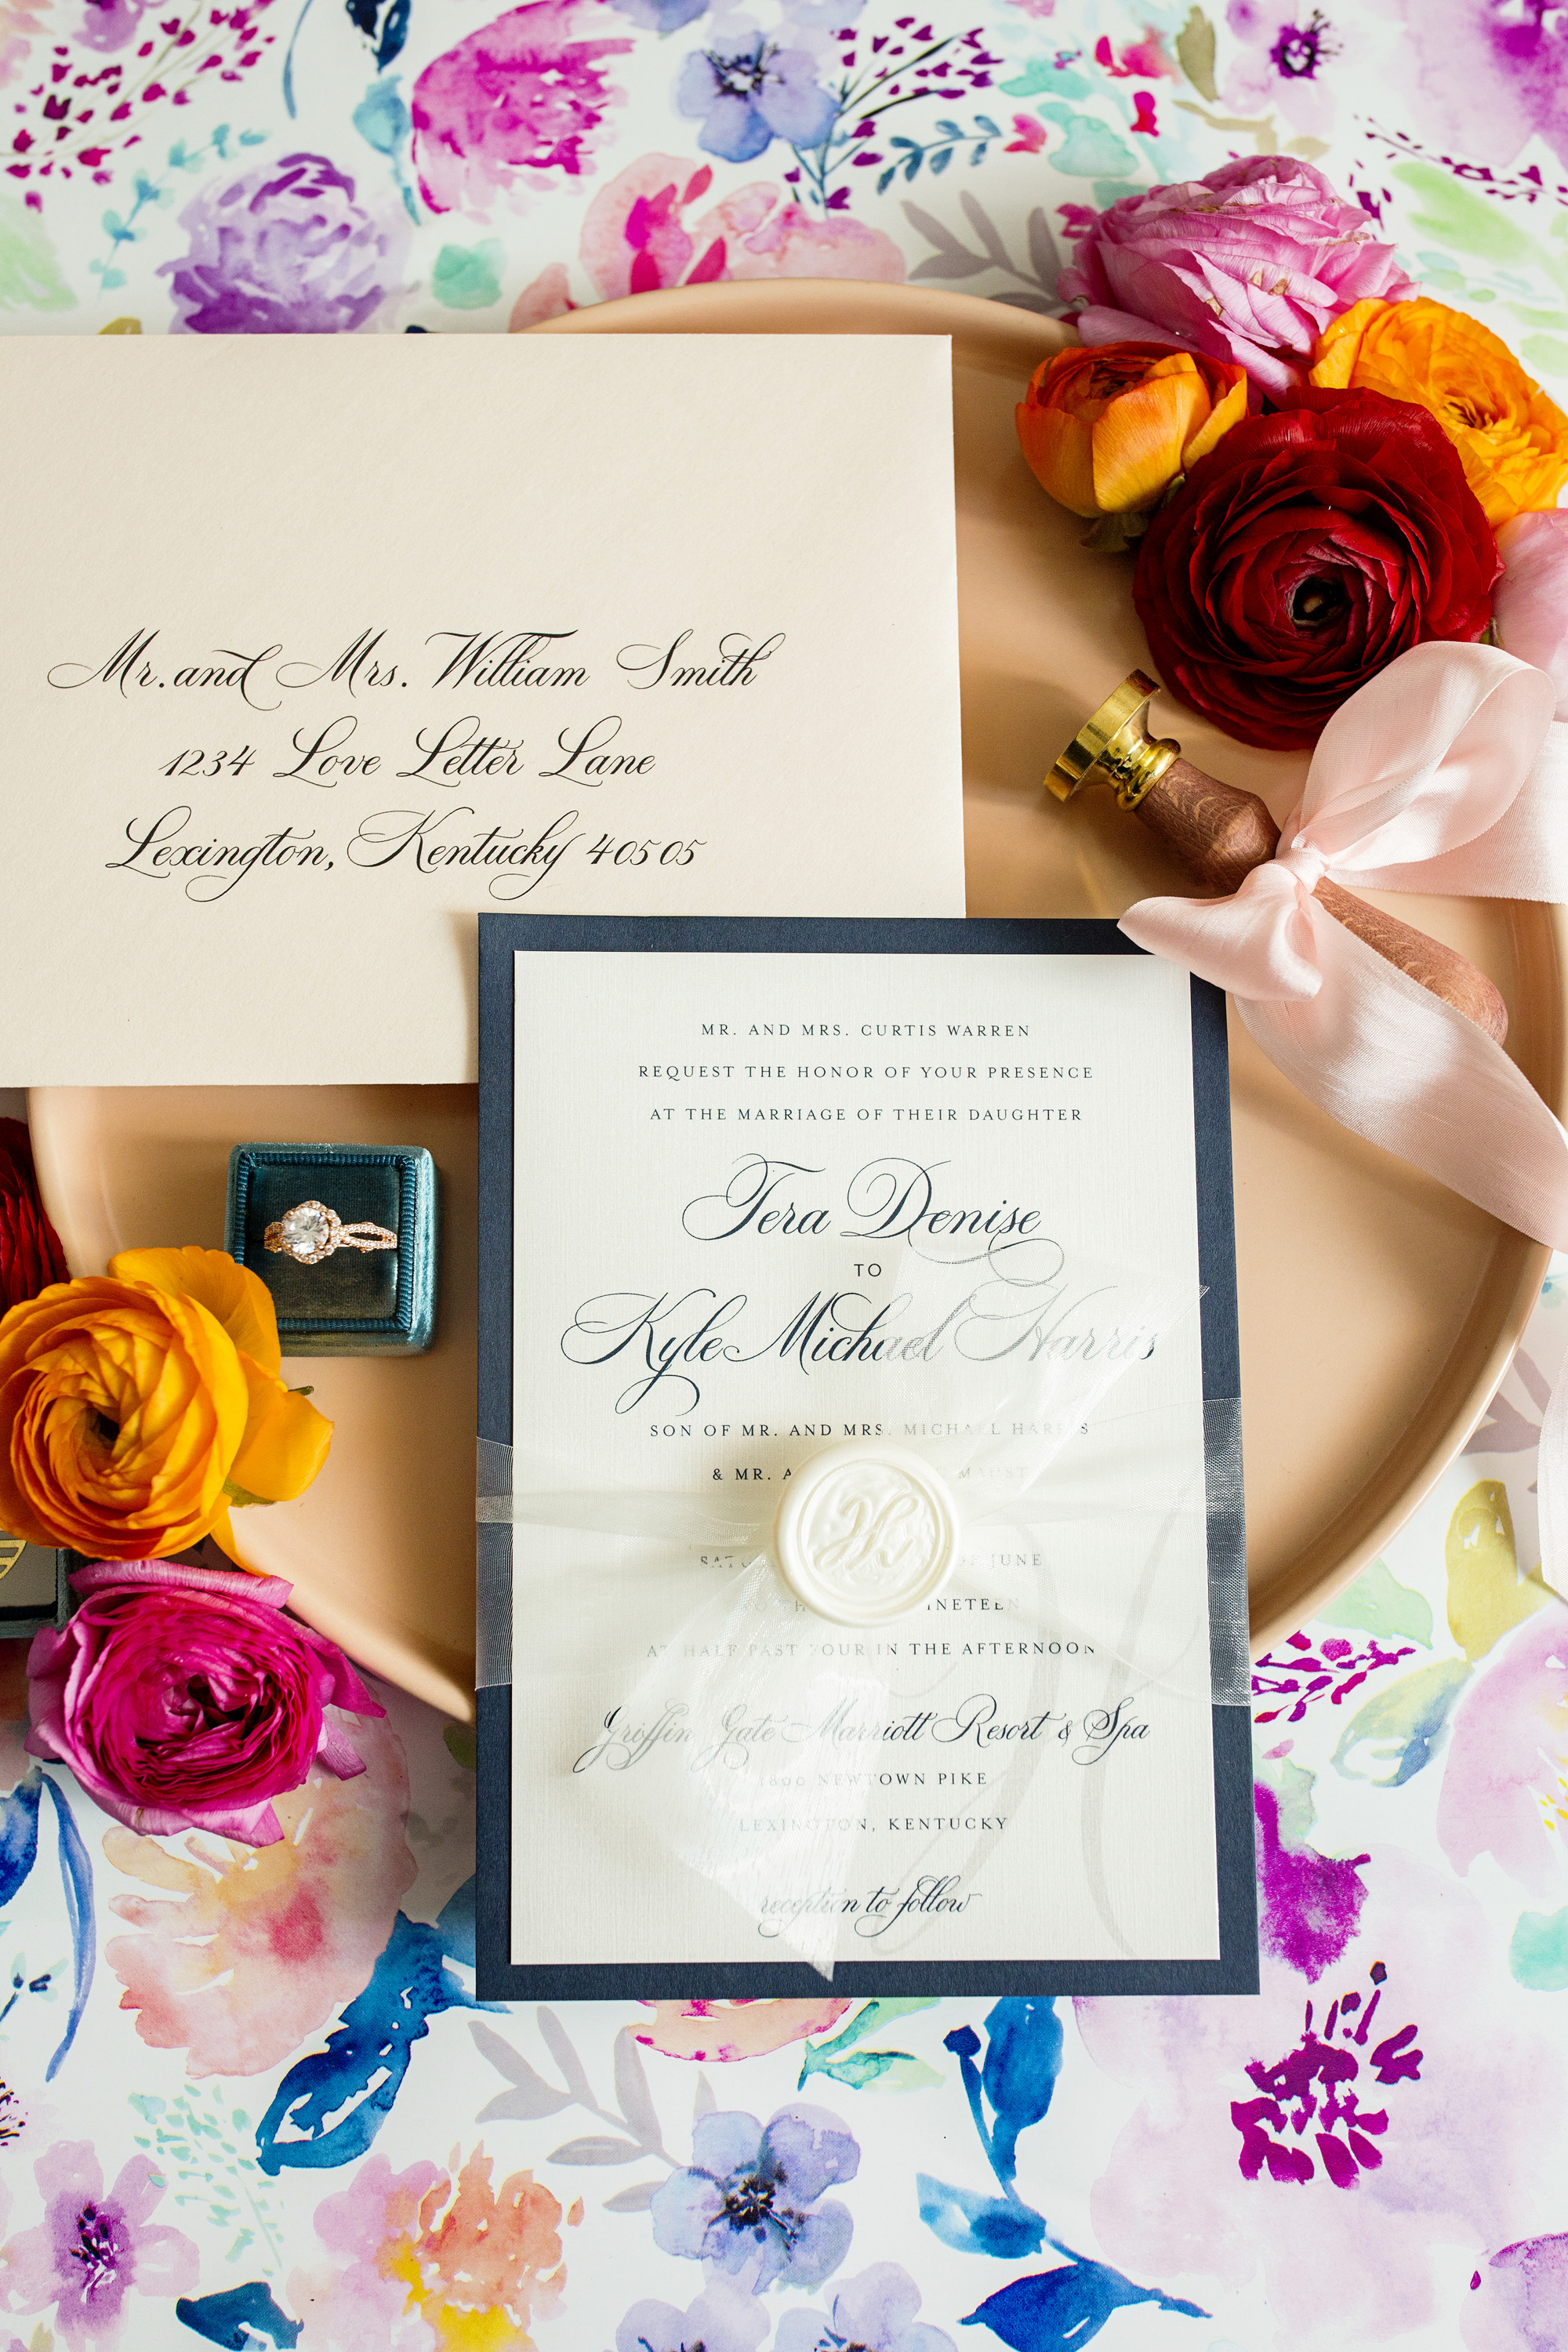 Seriously_Sabrina_Photography_Commercial_Simply_Done_Invites_2019_March_113